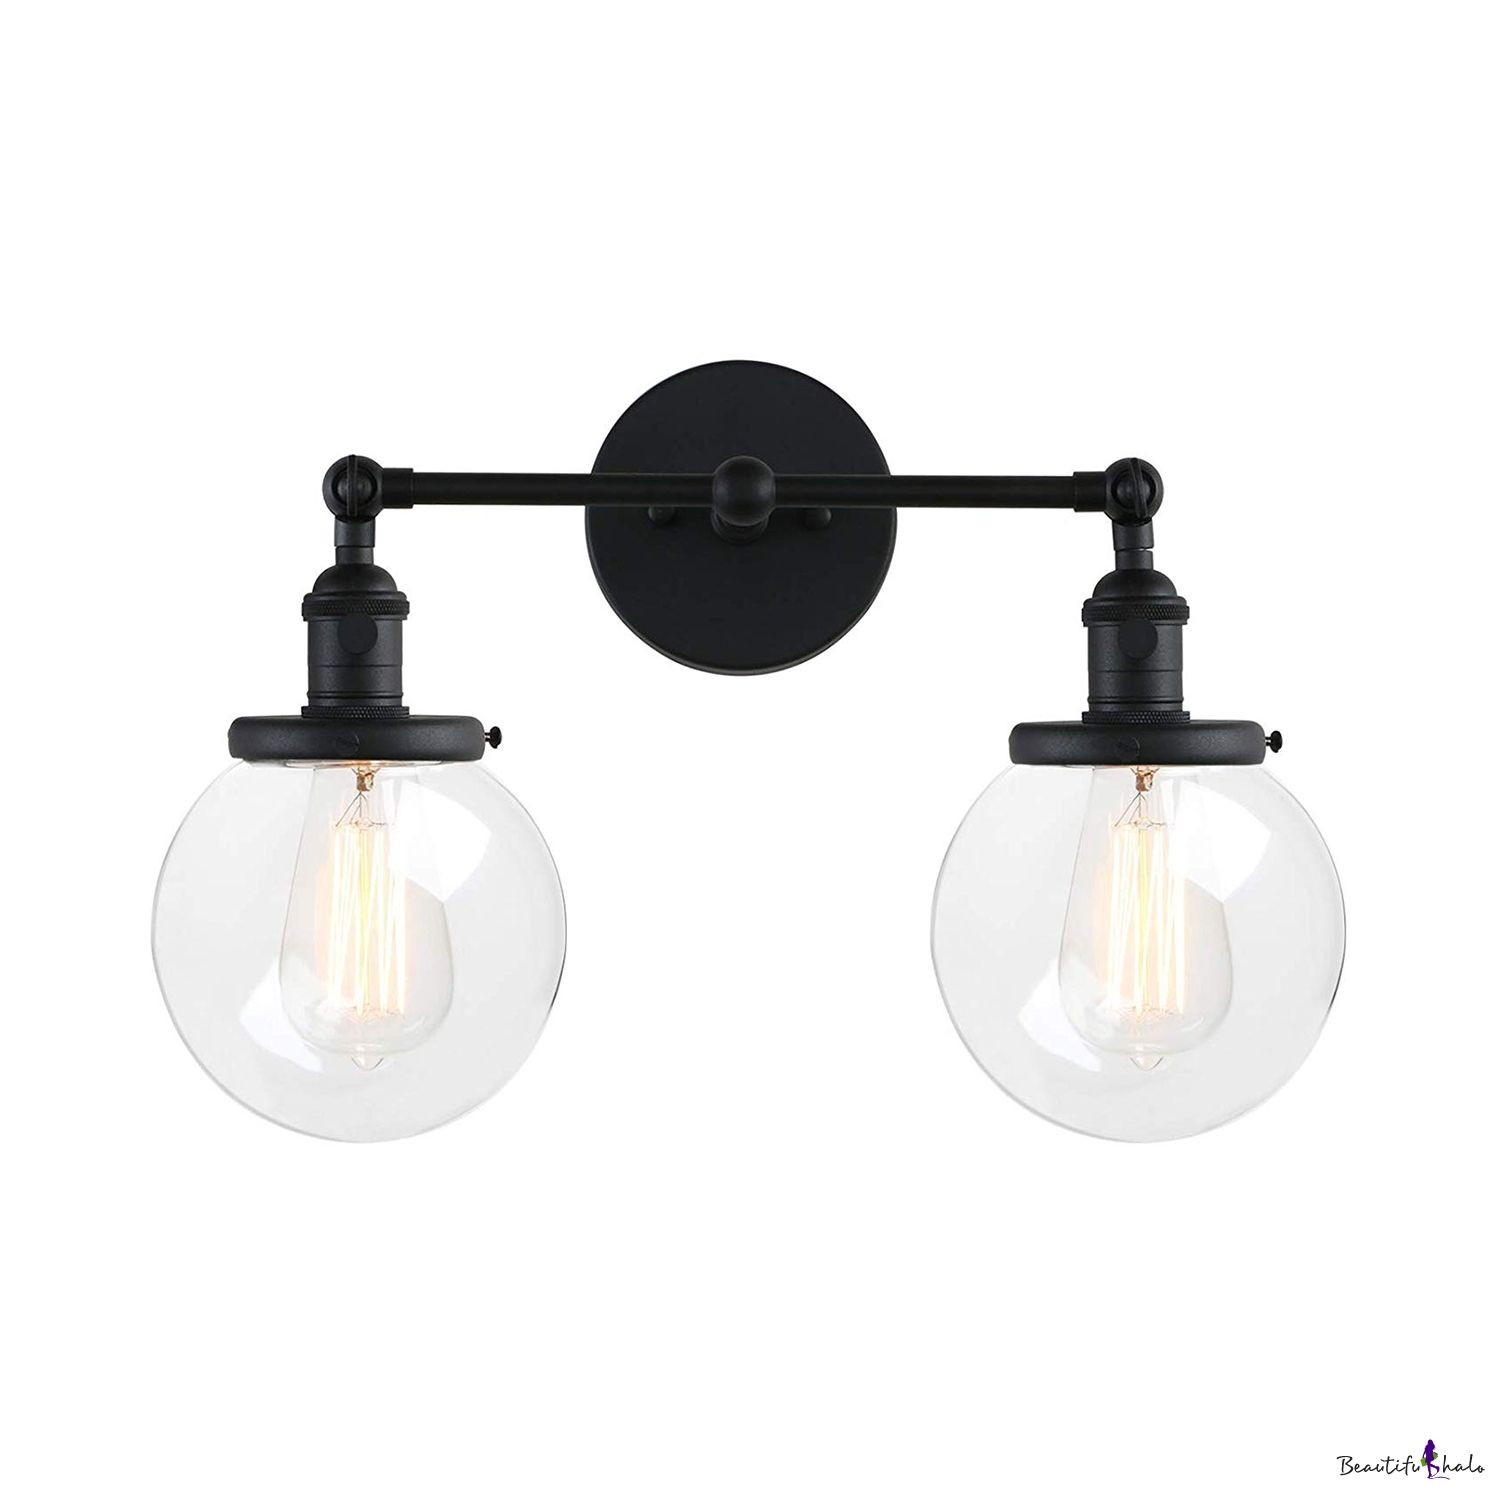 2 Lights Globe Shade Wall Light American Vintage Metal And Glass Sconce Light In Black Brass Vintage Bathroom Light Fixtures Vintage Bathroom Lighting Wall Sconce Lighting